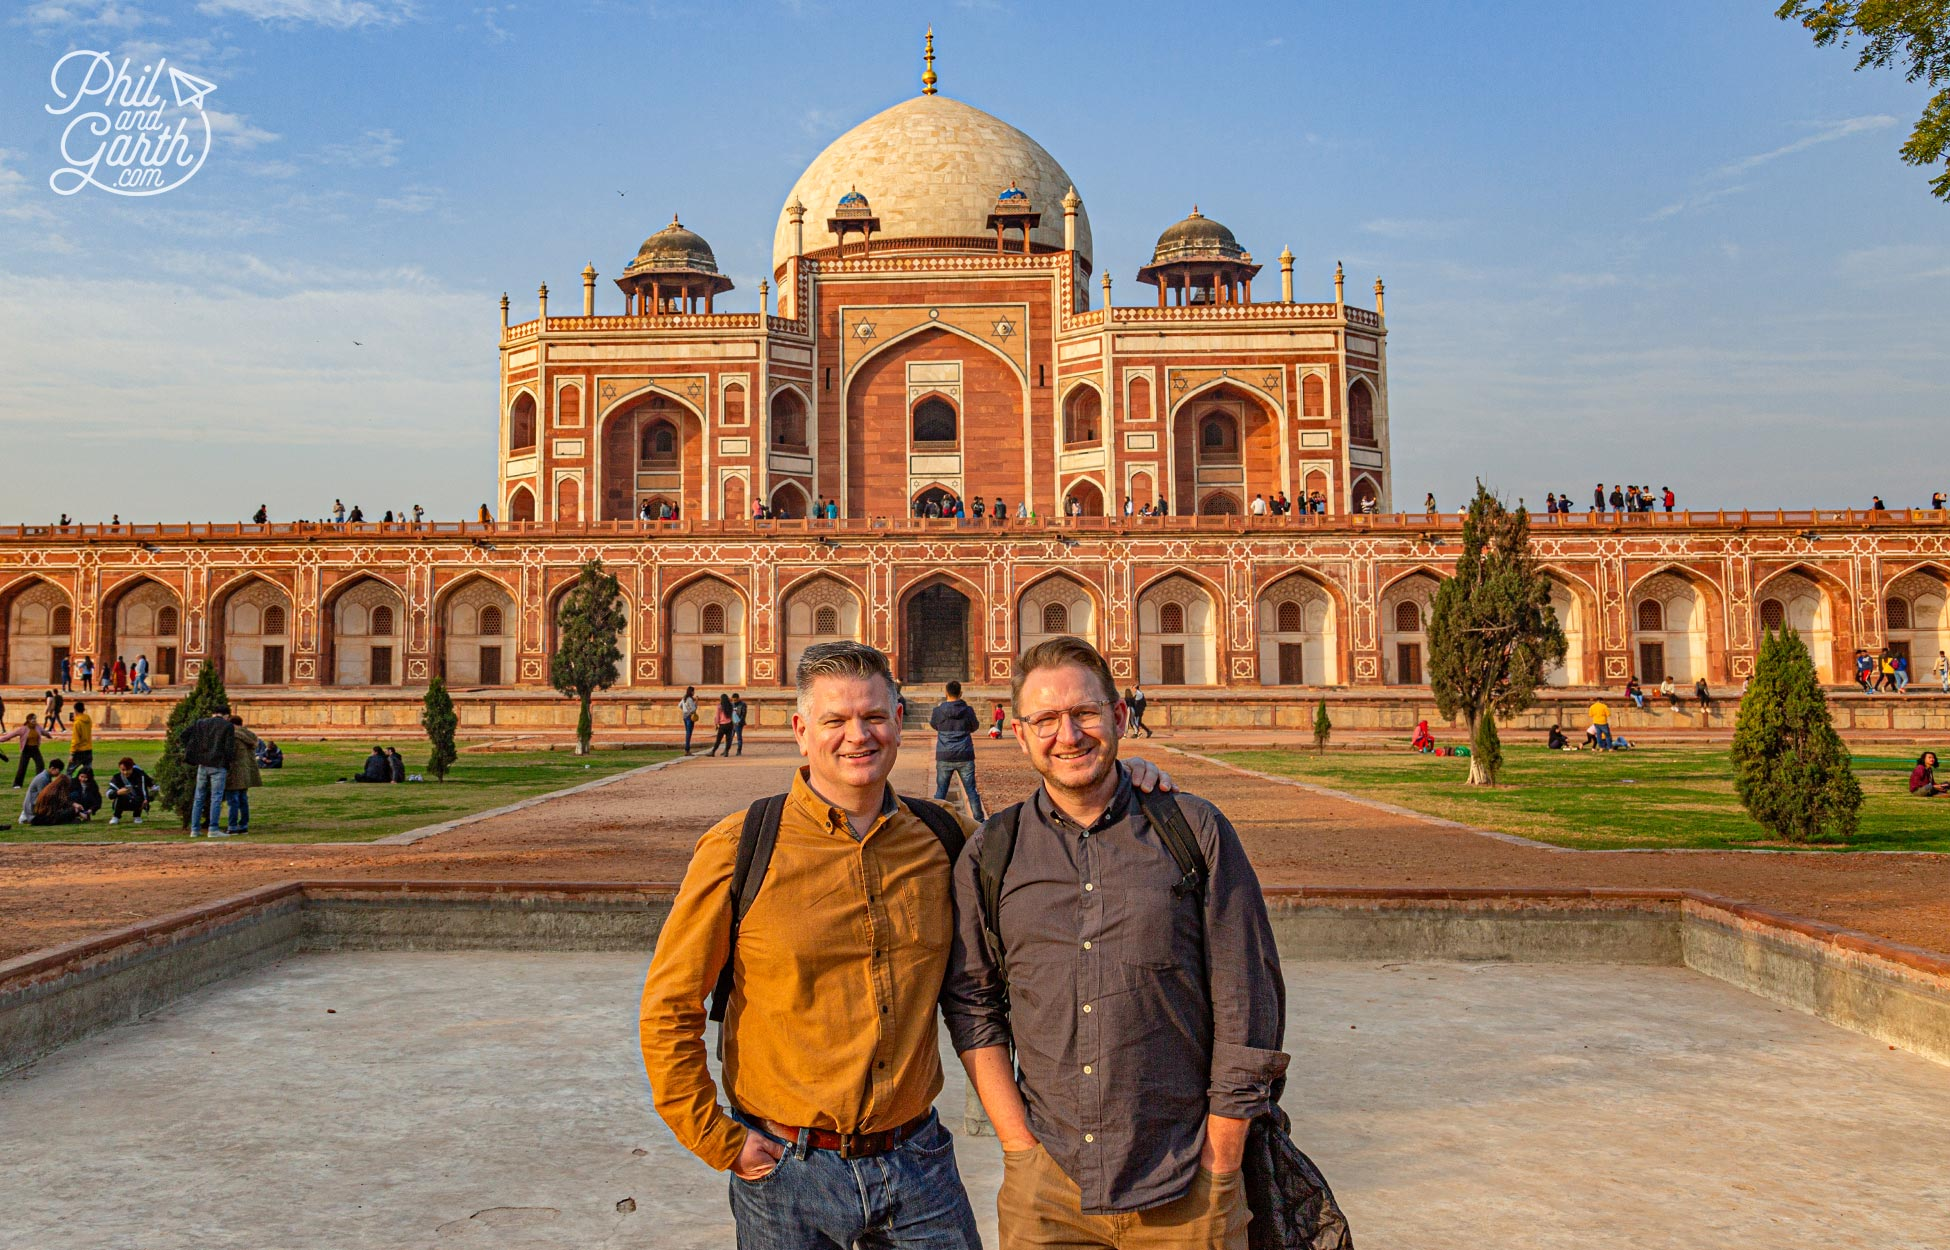 Humayun's Tomb was the inspiration behind the design of the Taj Mahal in Agra